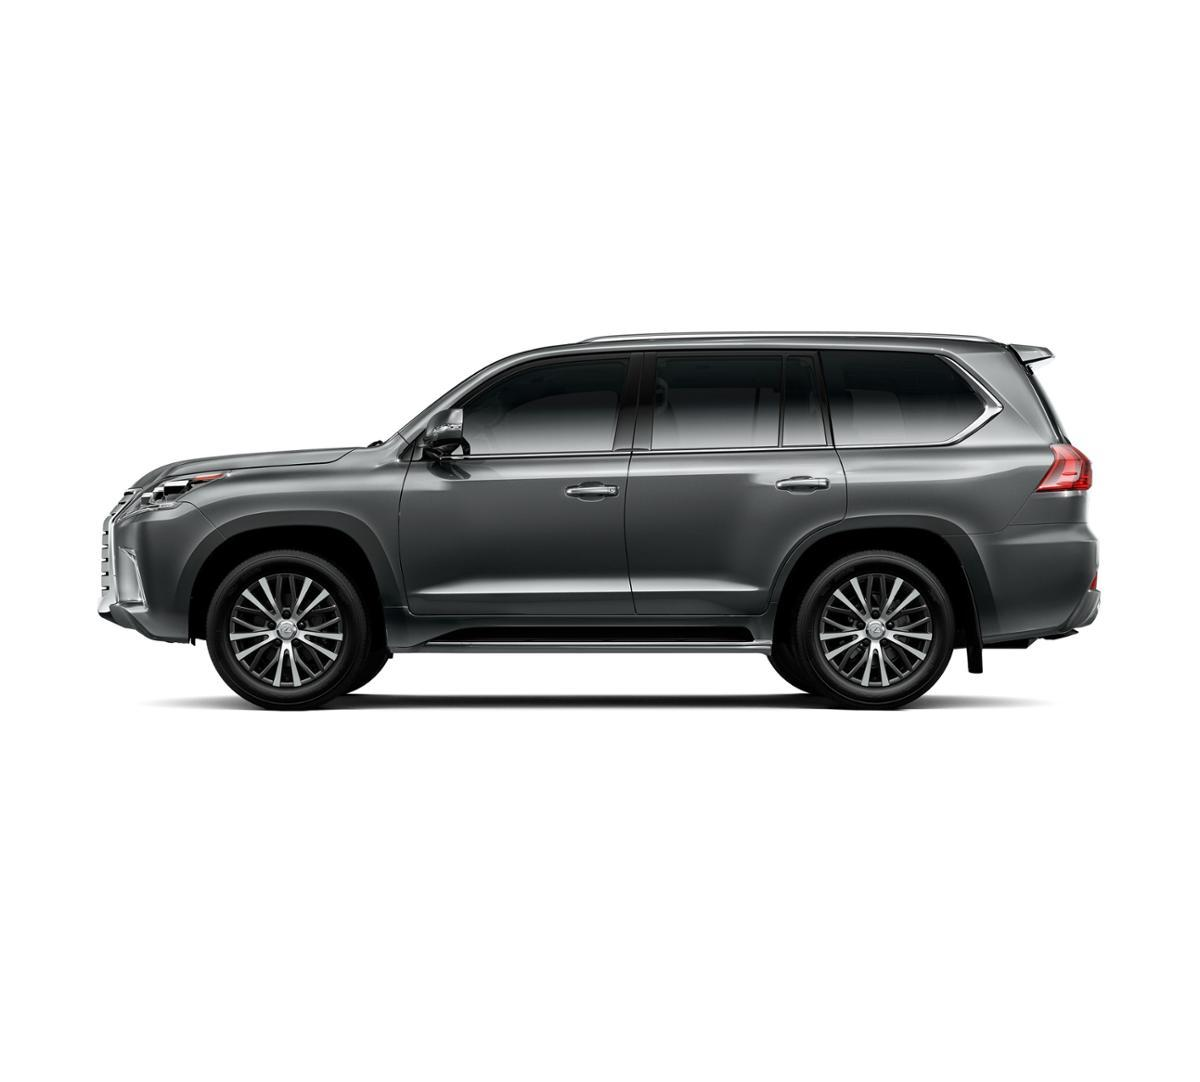 2019 Lexus LX 570 For Sale In Glenview